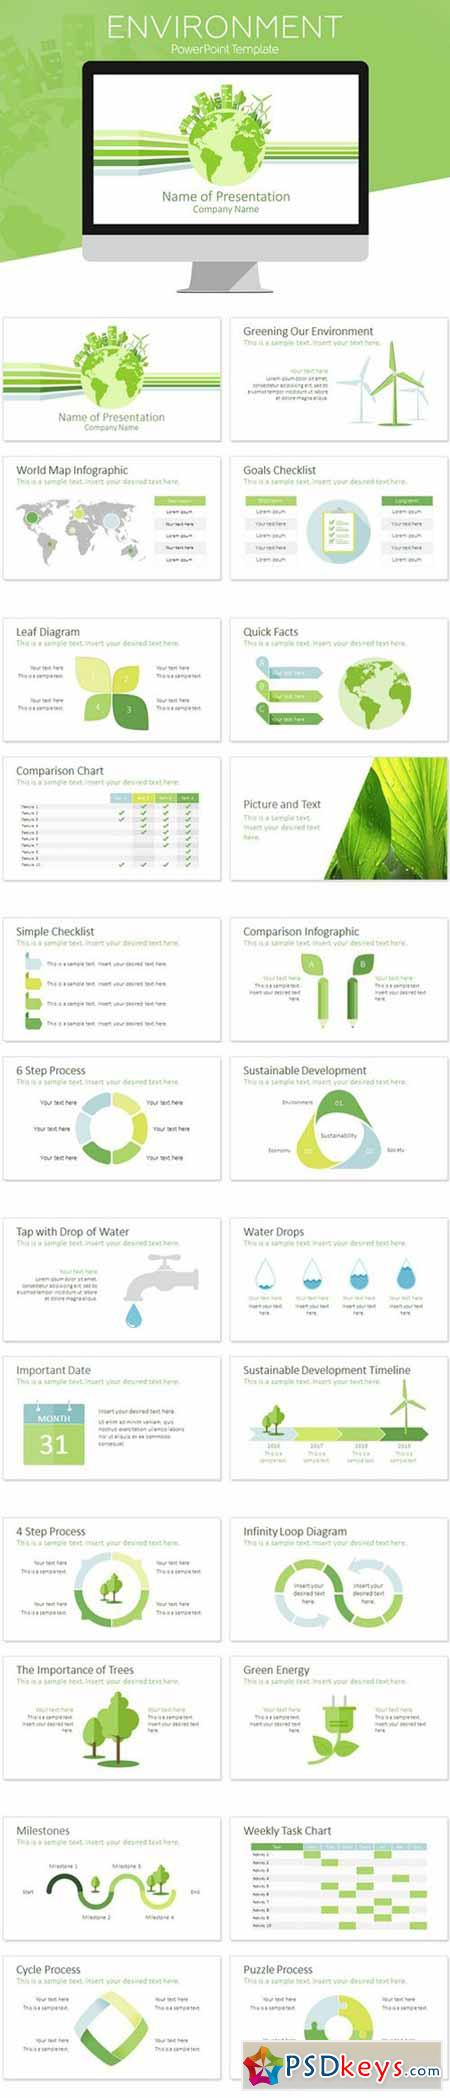 environment powerpoint template 547553 187 free download